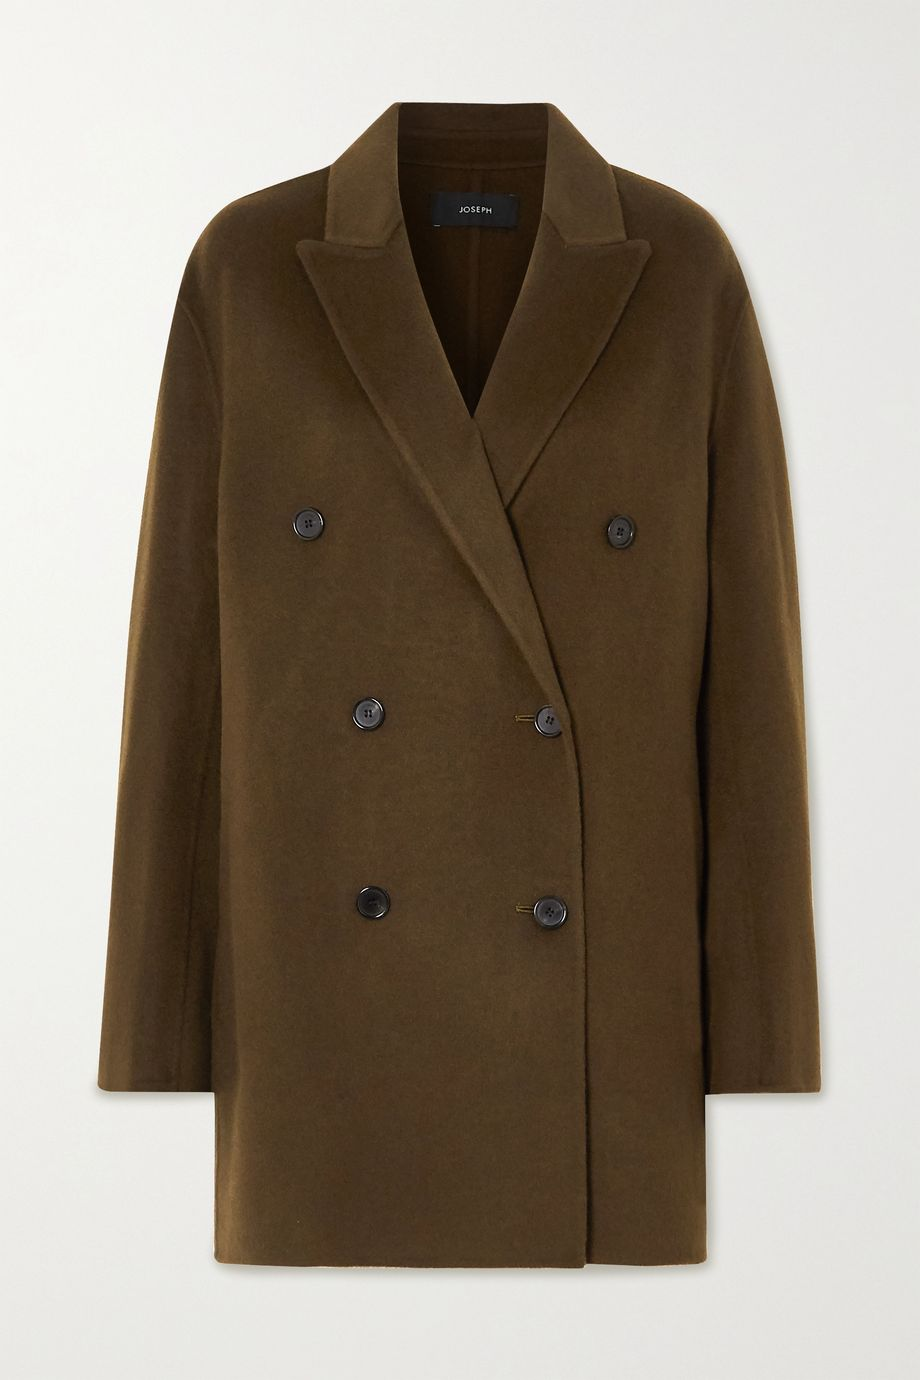 Joseph Clavel double-breasted wool and cashmere-blend coat